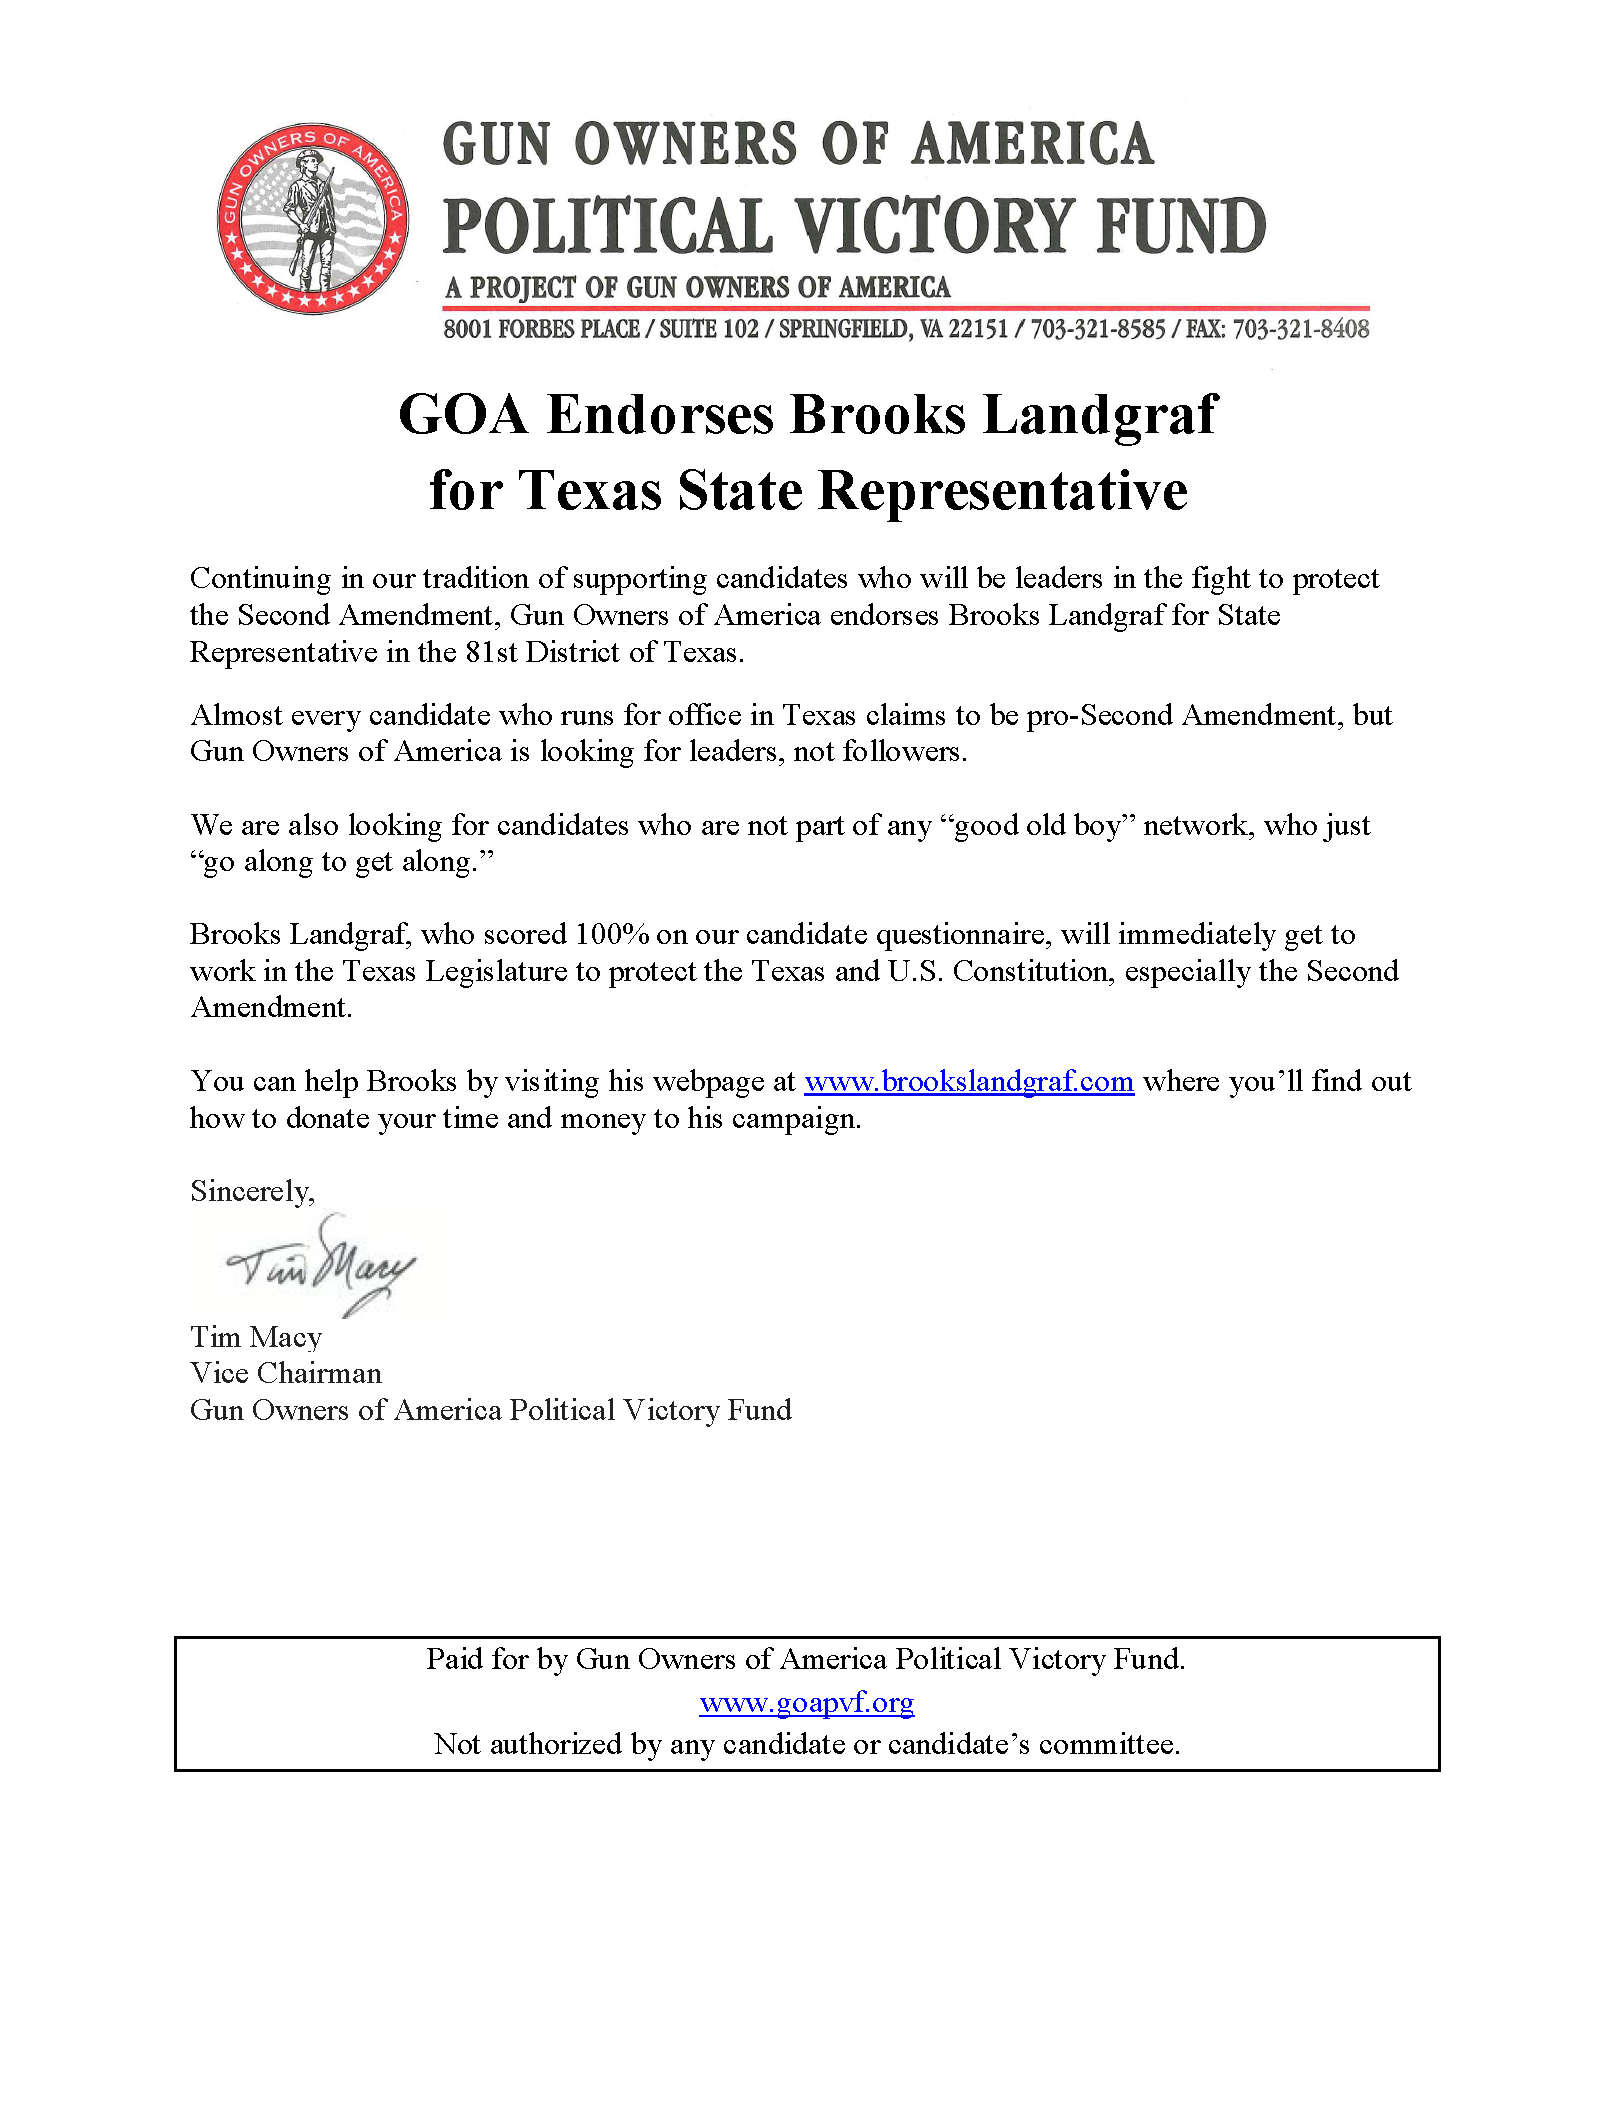 GOA_2014_Brooks_Landgraf_Endorsement.png